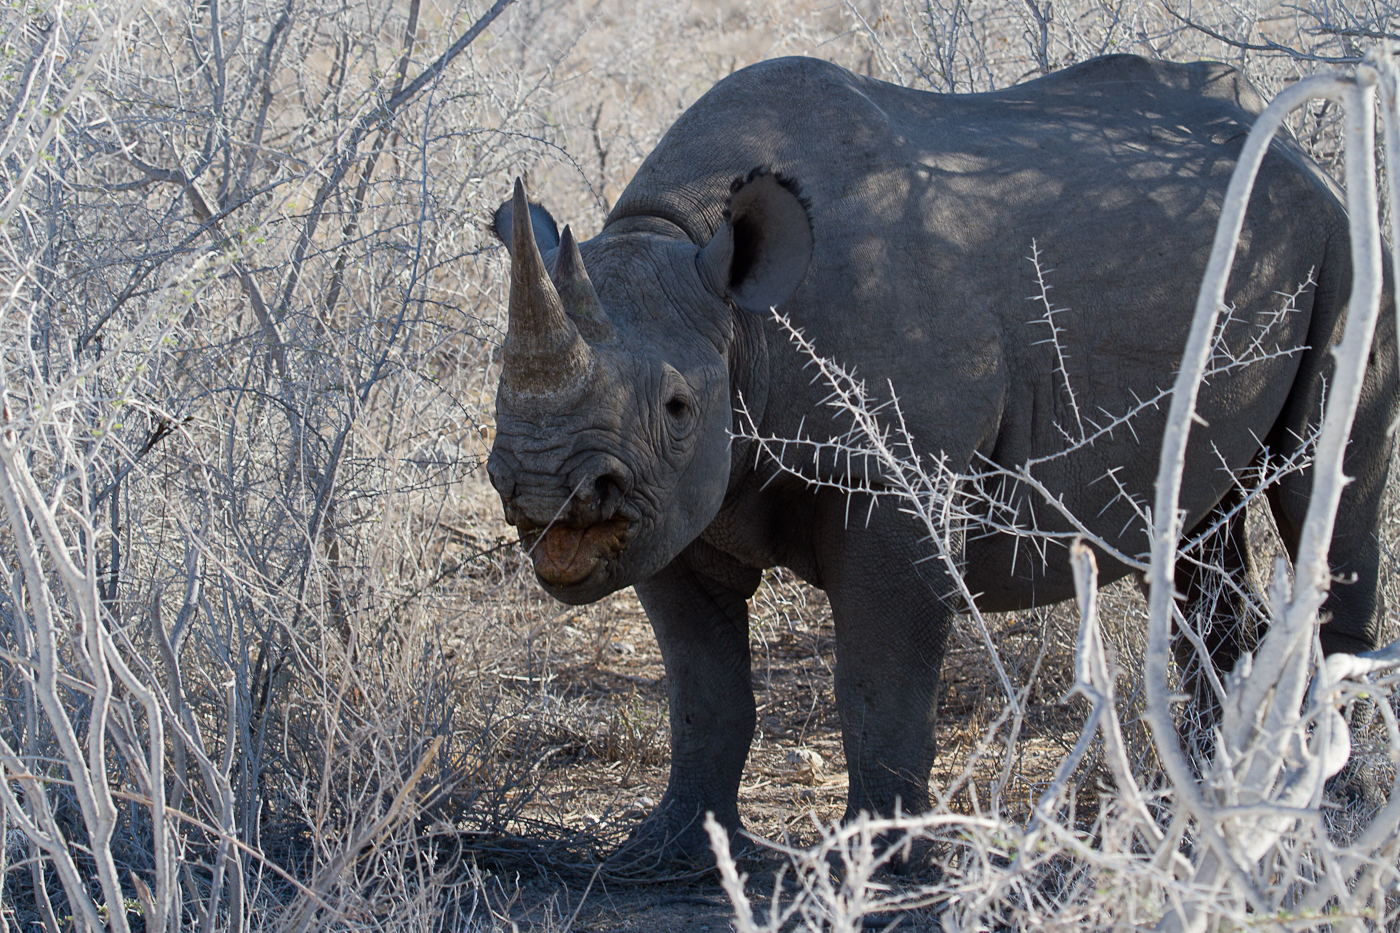 Black Rhino. He is actually eating thorns. Yum!